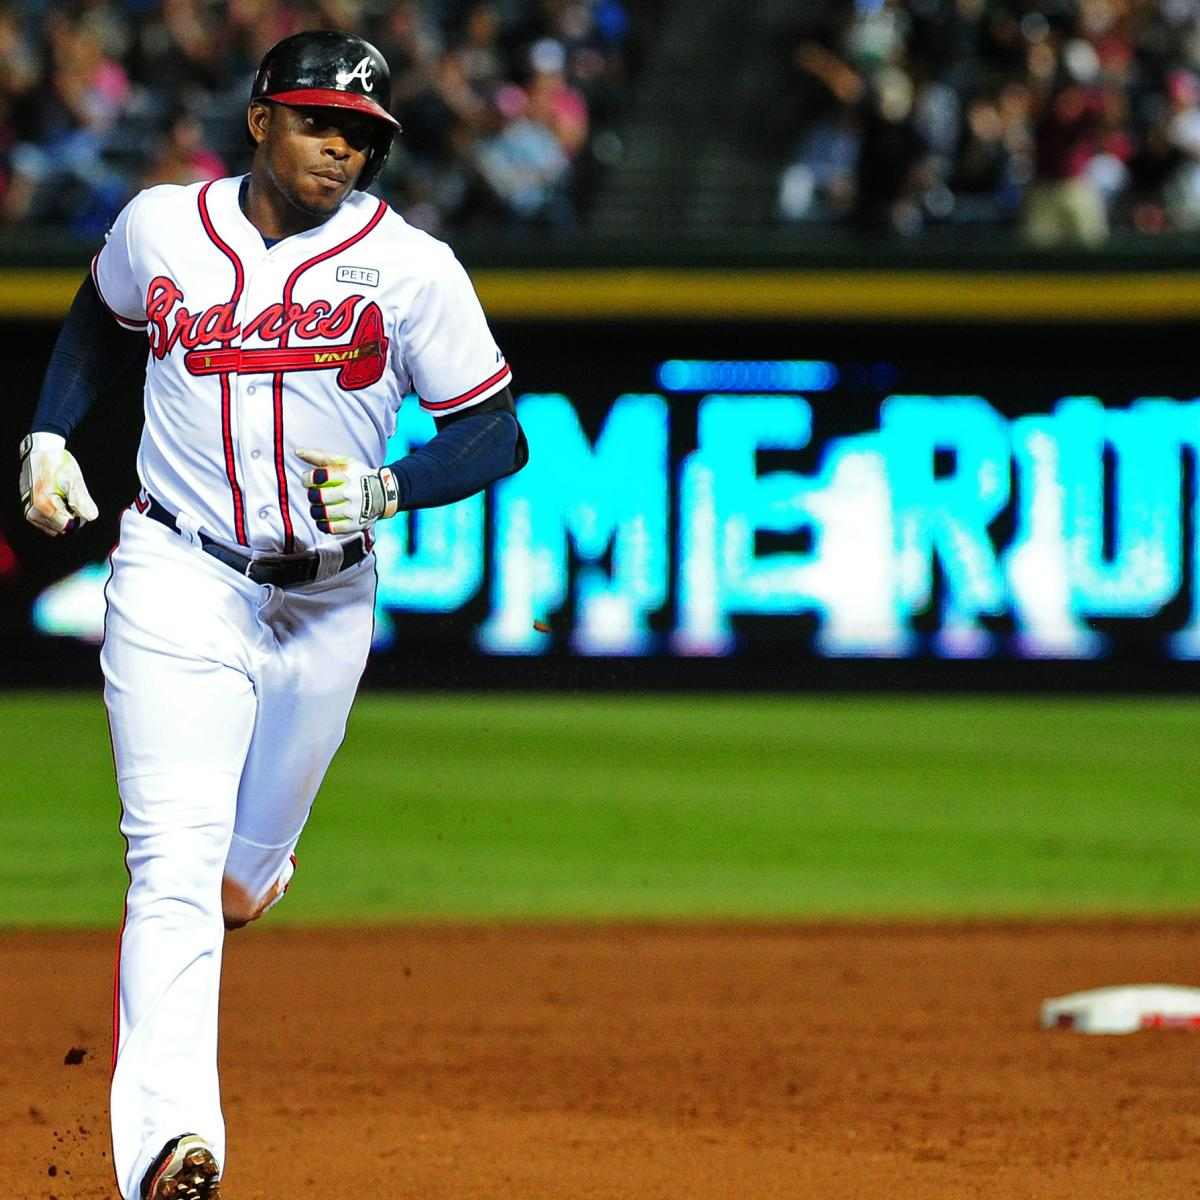 Mlb Rumors Analyzing All The Latest Whispers News And: Justin Upton Trade Rumors: Analyzing Top Potential Landing